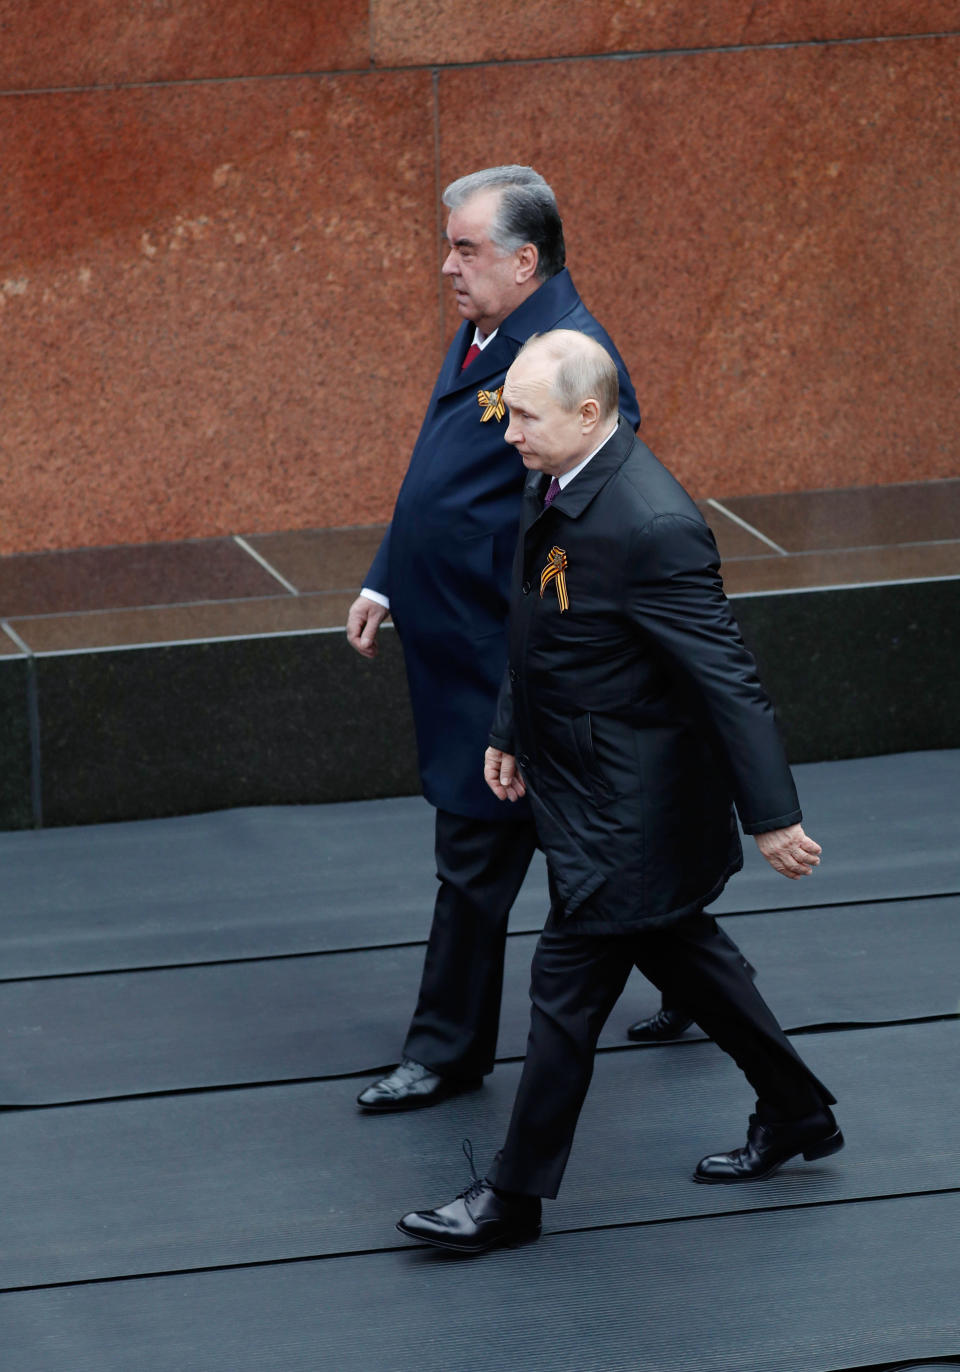 Russian President Vladimir Putin, right, and Tajikistan's President Emomali Rakhmon walk before the Victory Day military parade in Moscow, Russia, Sunday, May 9, 2021, marking the 76th anniversary of the end of World War II in Europe. (Dmitry Astakhov, Sputnik, Kremlin Pool Photo via AP)